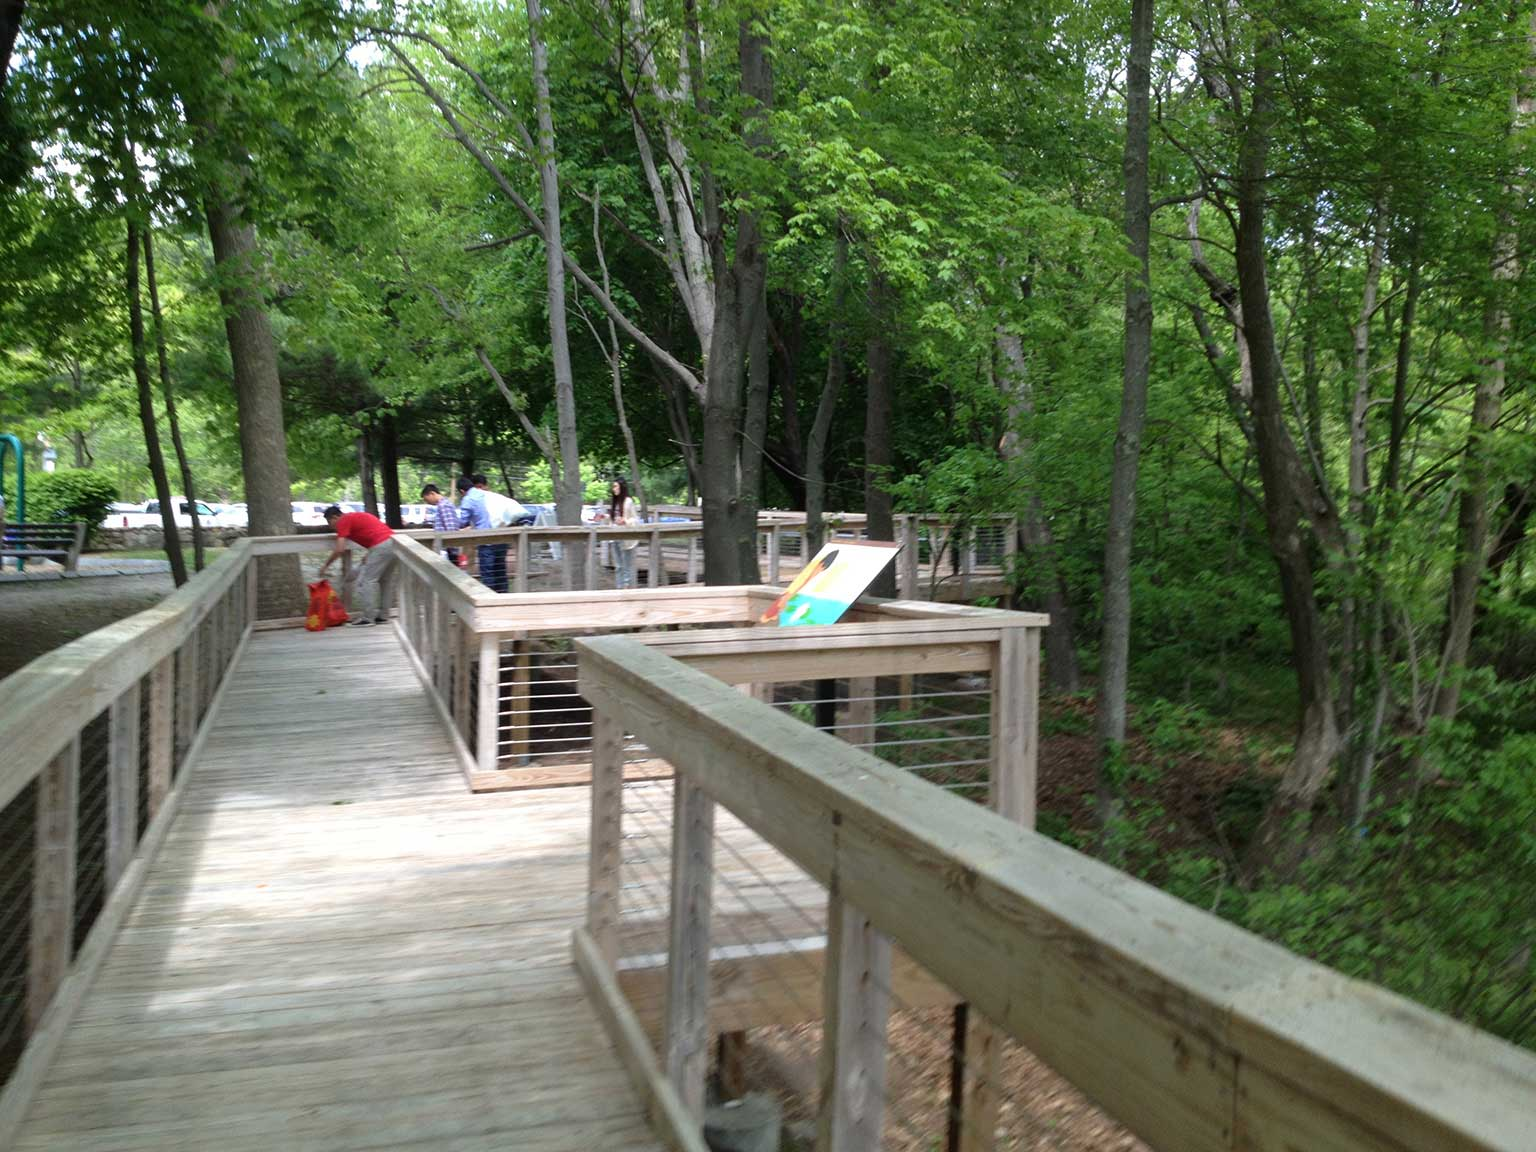 The new boardwalk made accessible spectacular views of the Marsh and reduced human intrusion to the fragile habitat. Located along the path are strategically placed viewing nodes.